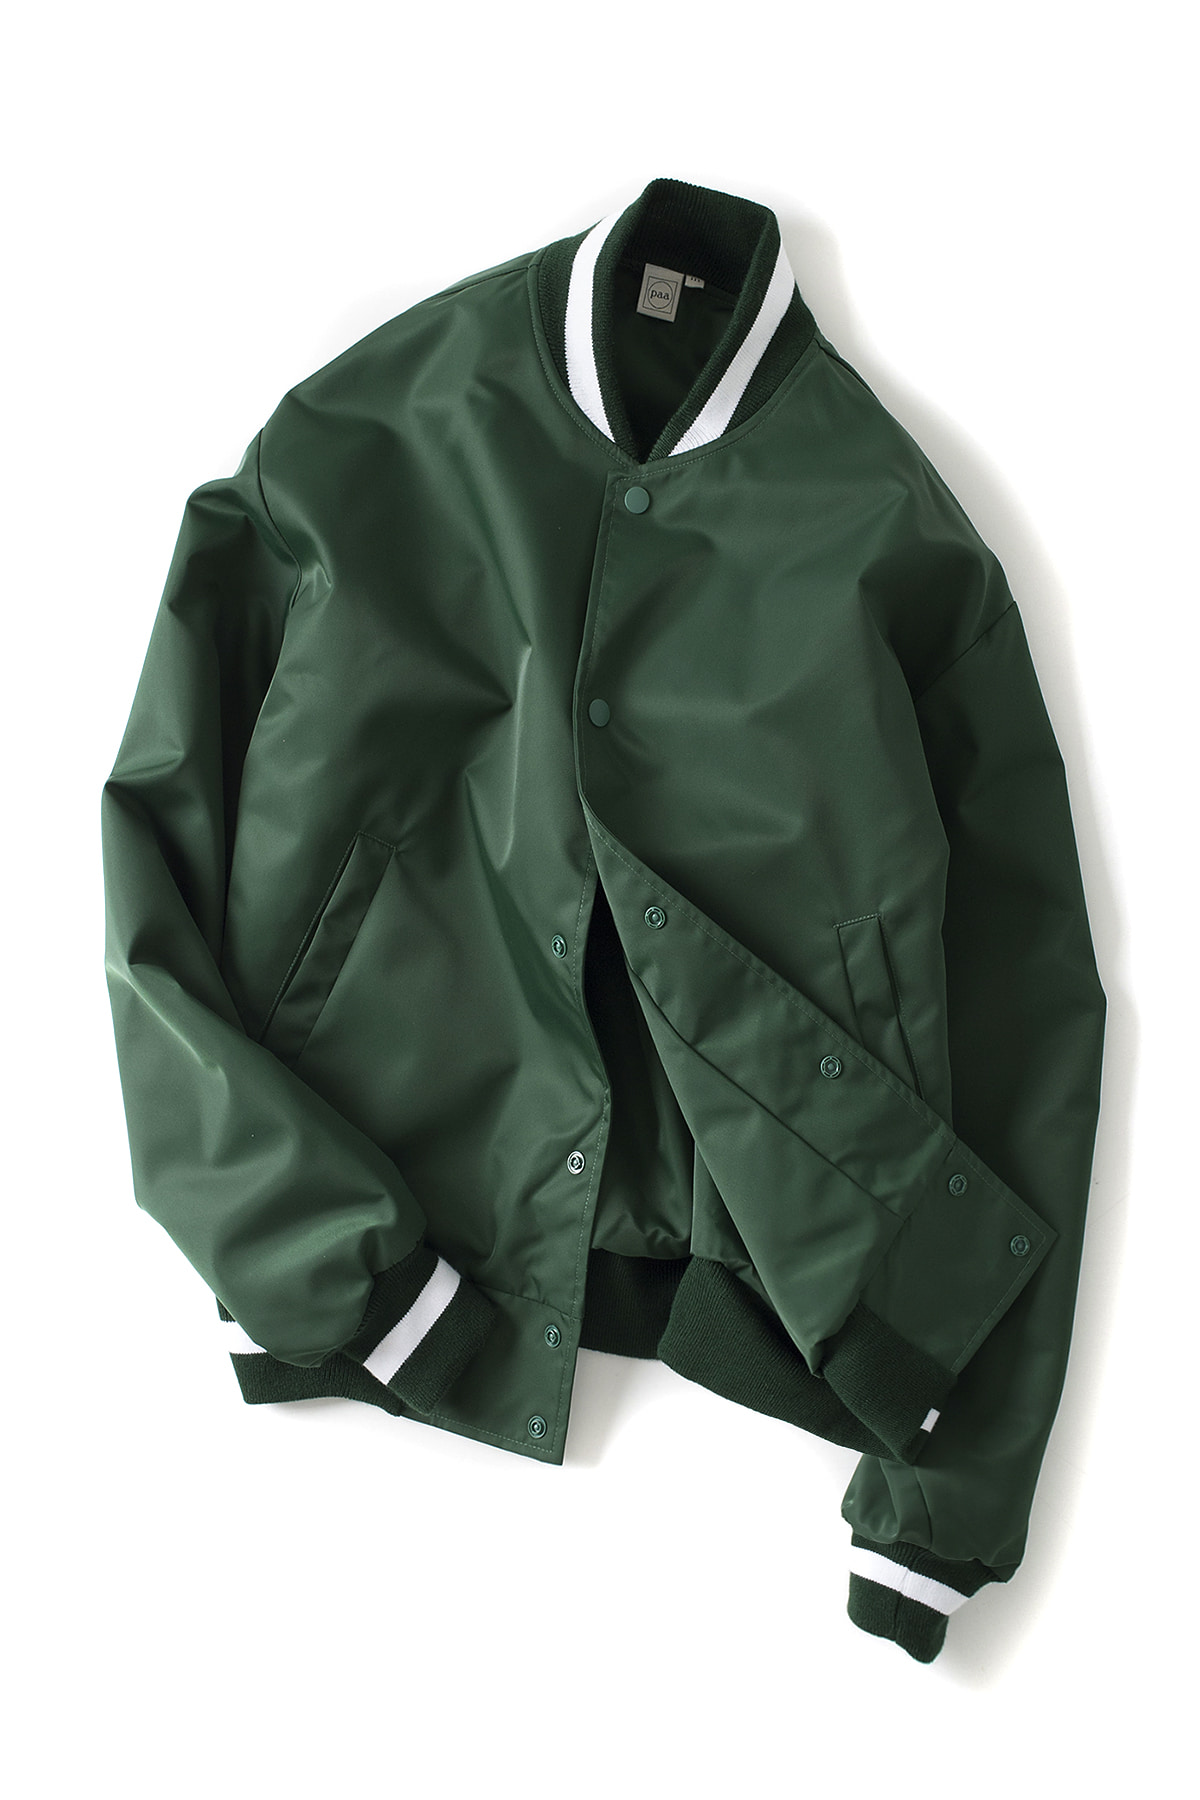 paa : Gymnasium Jacket (Green)